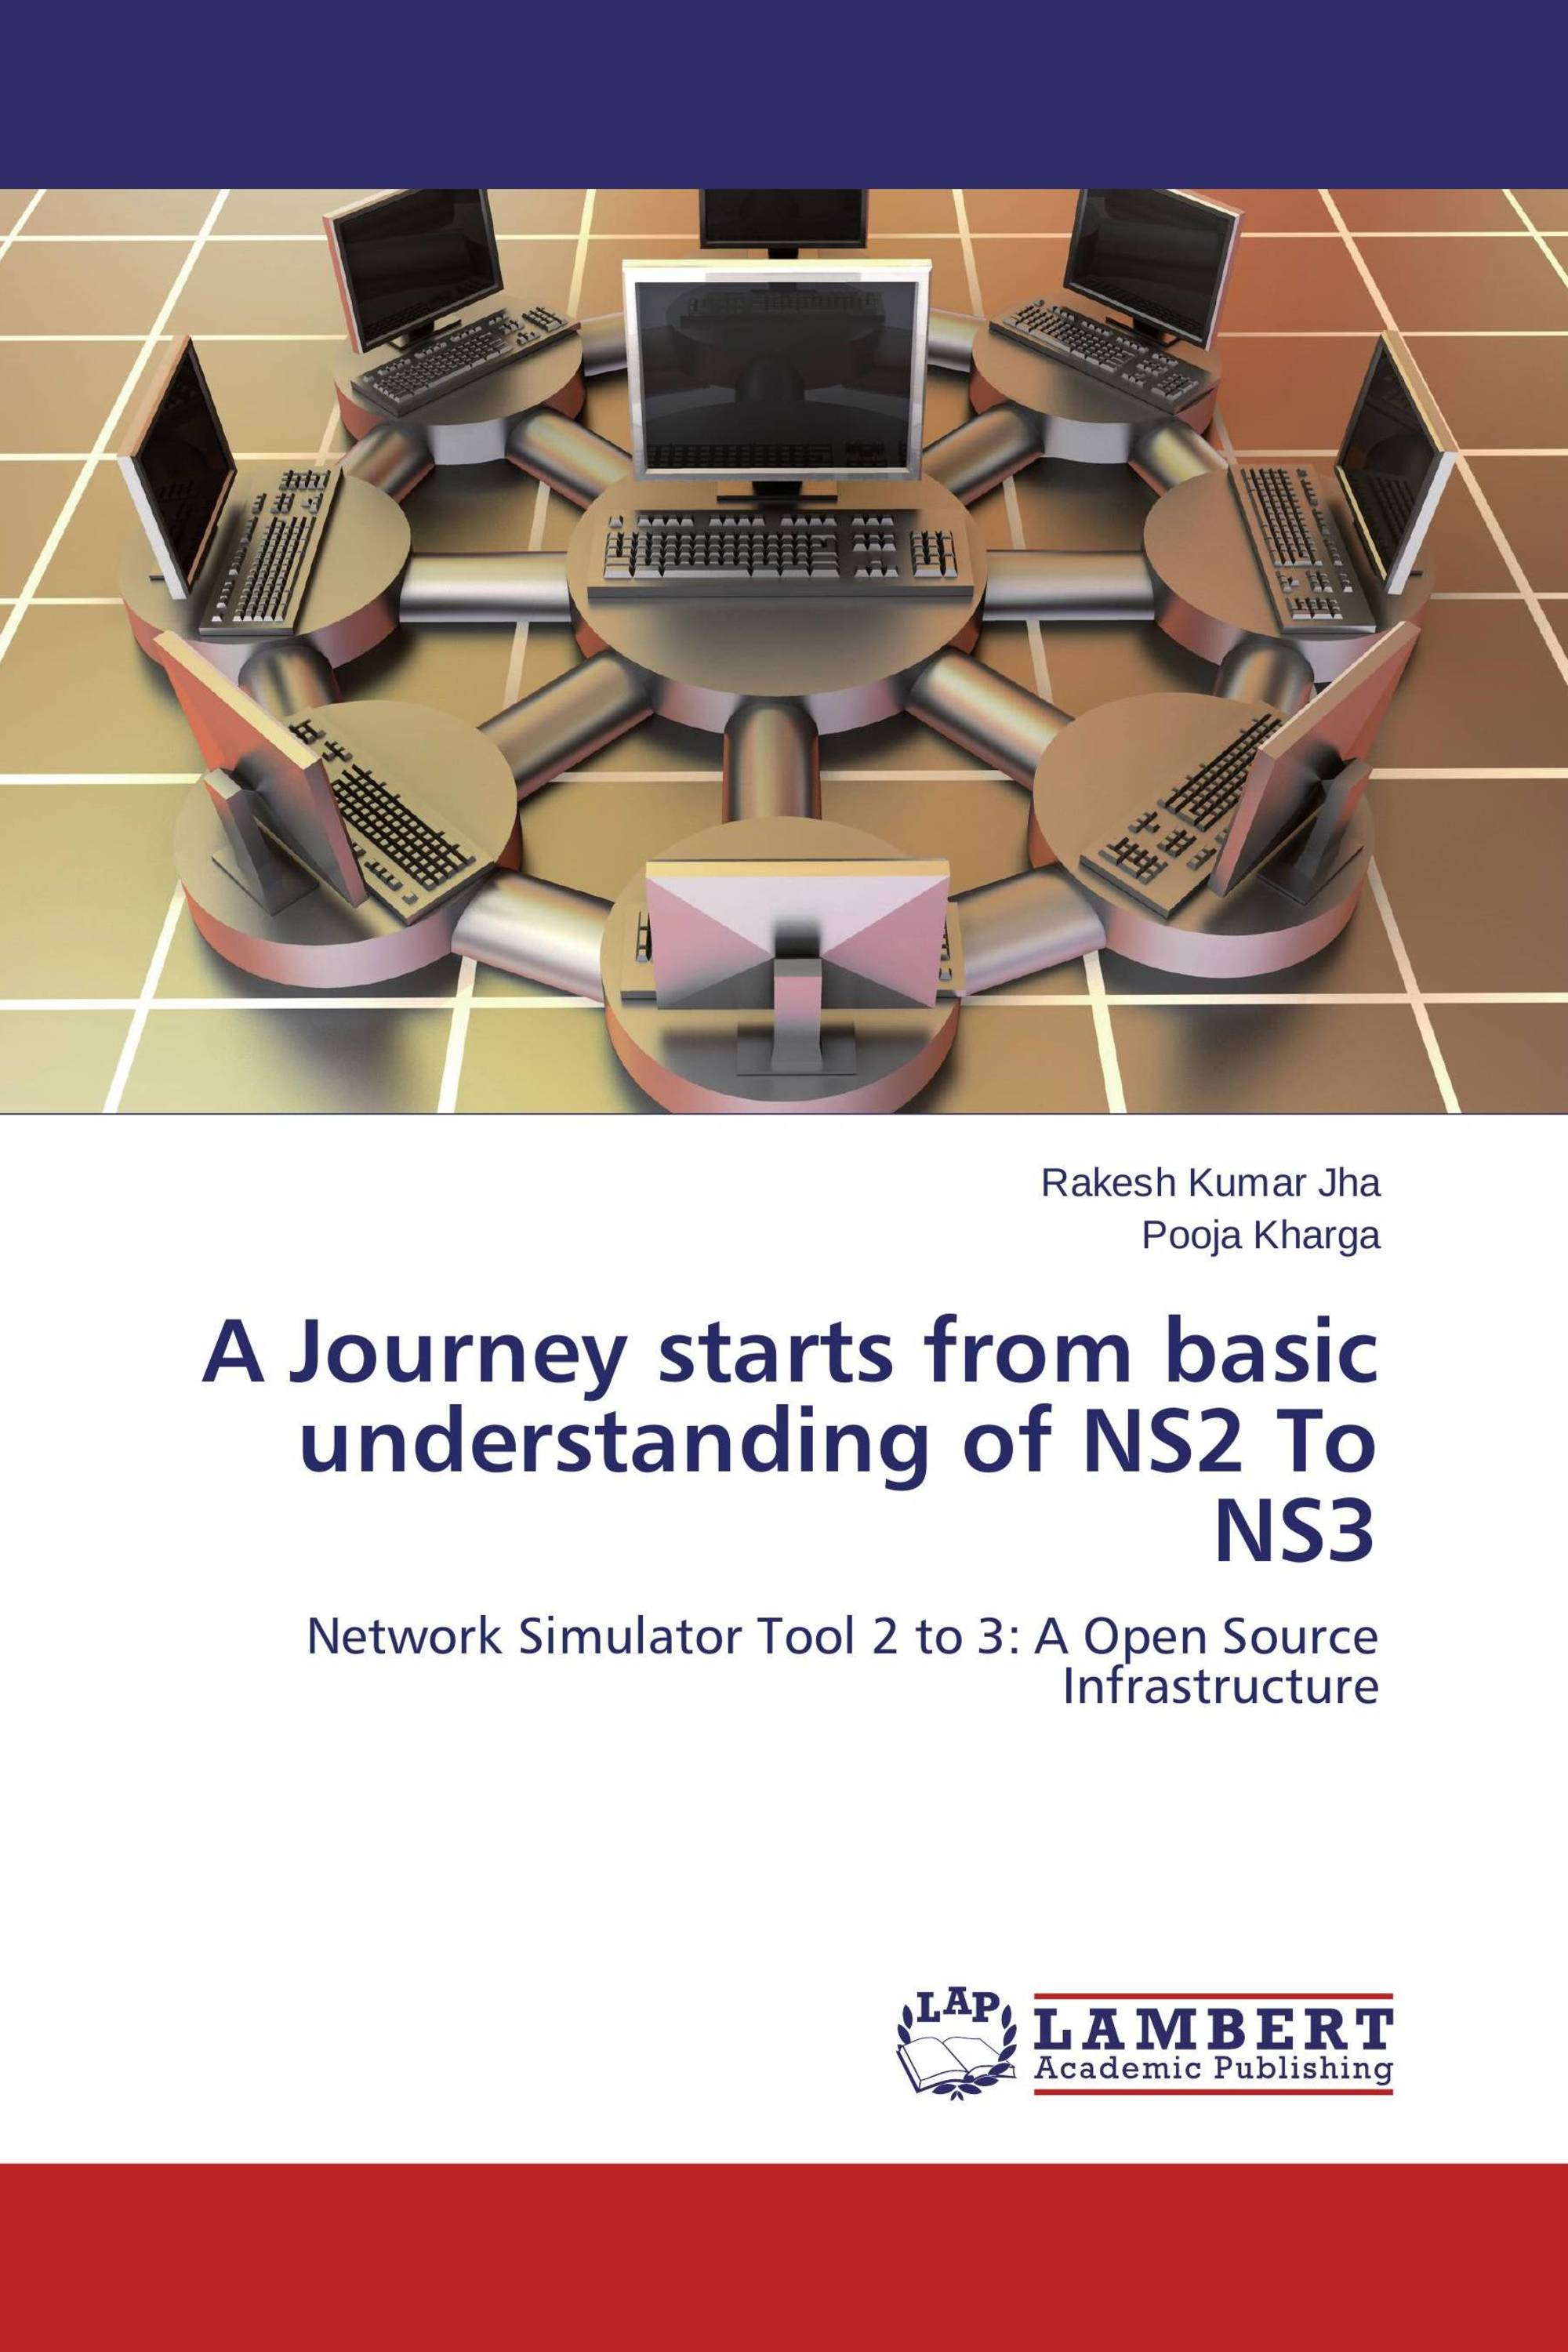 A Journey starts from basic understanding of NS2 To NS3